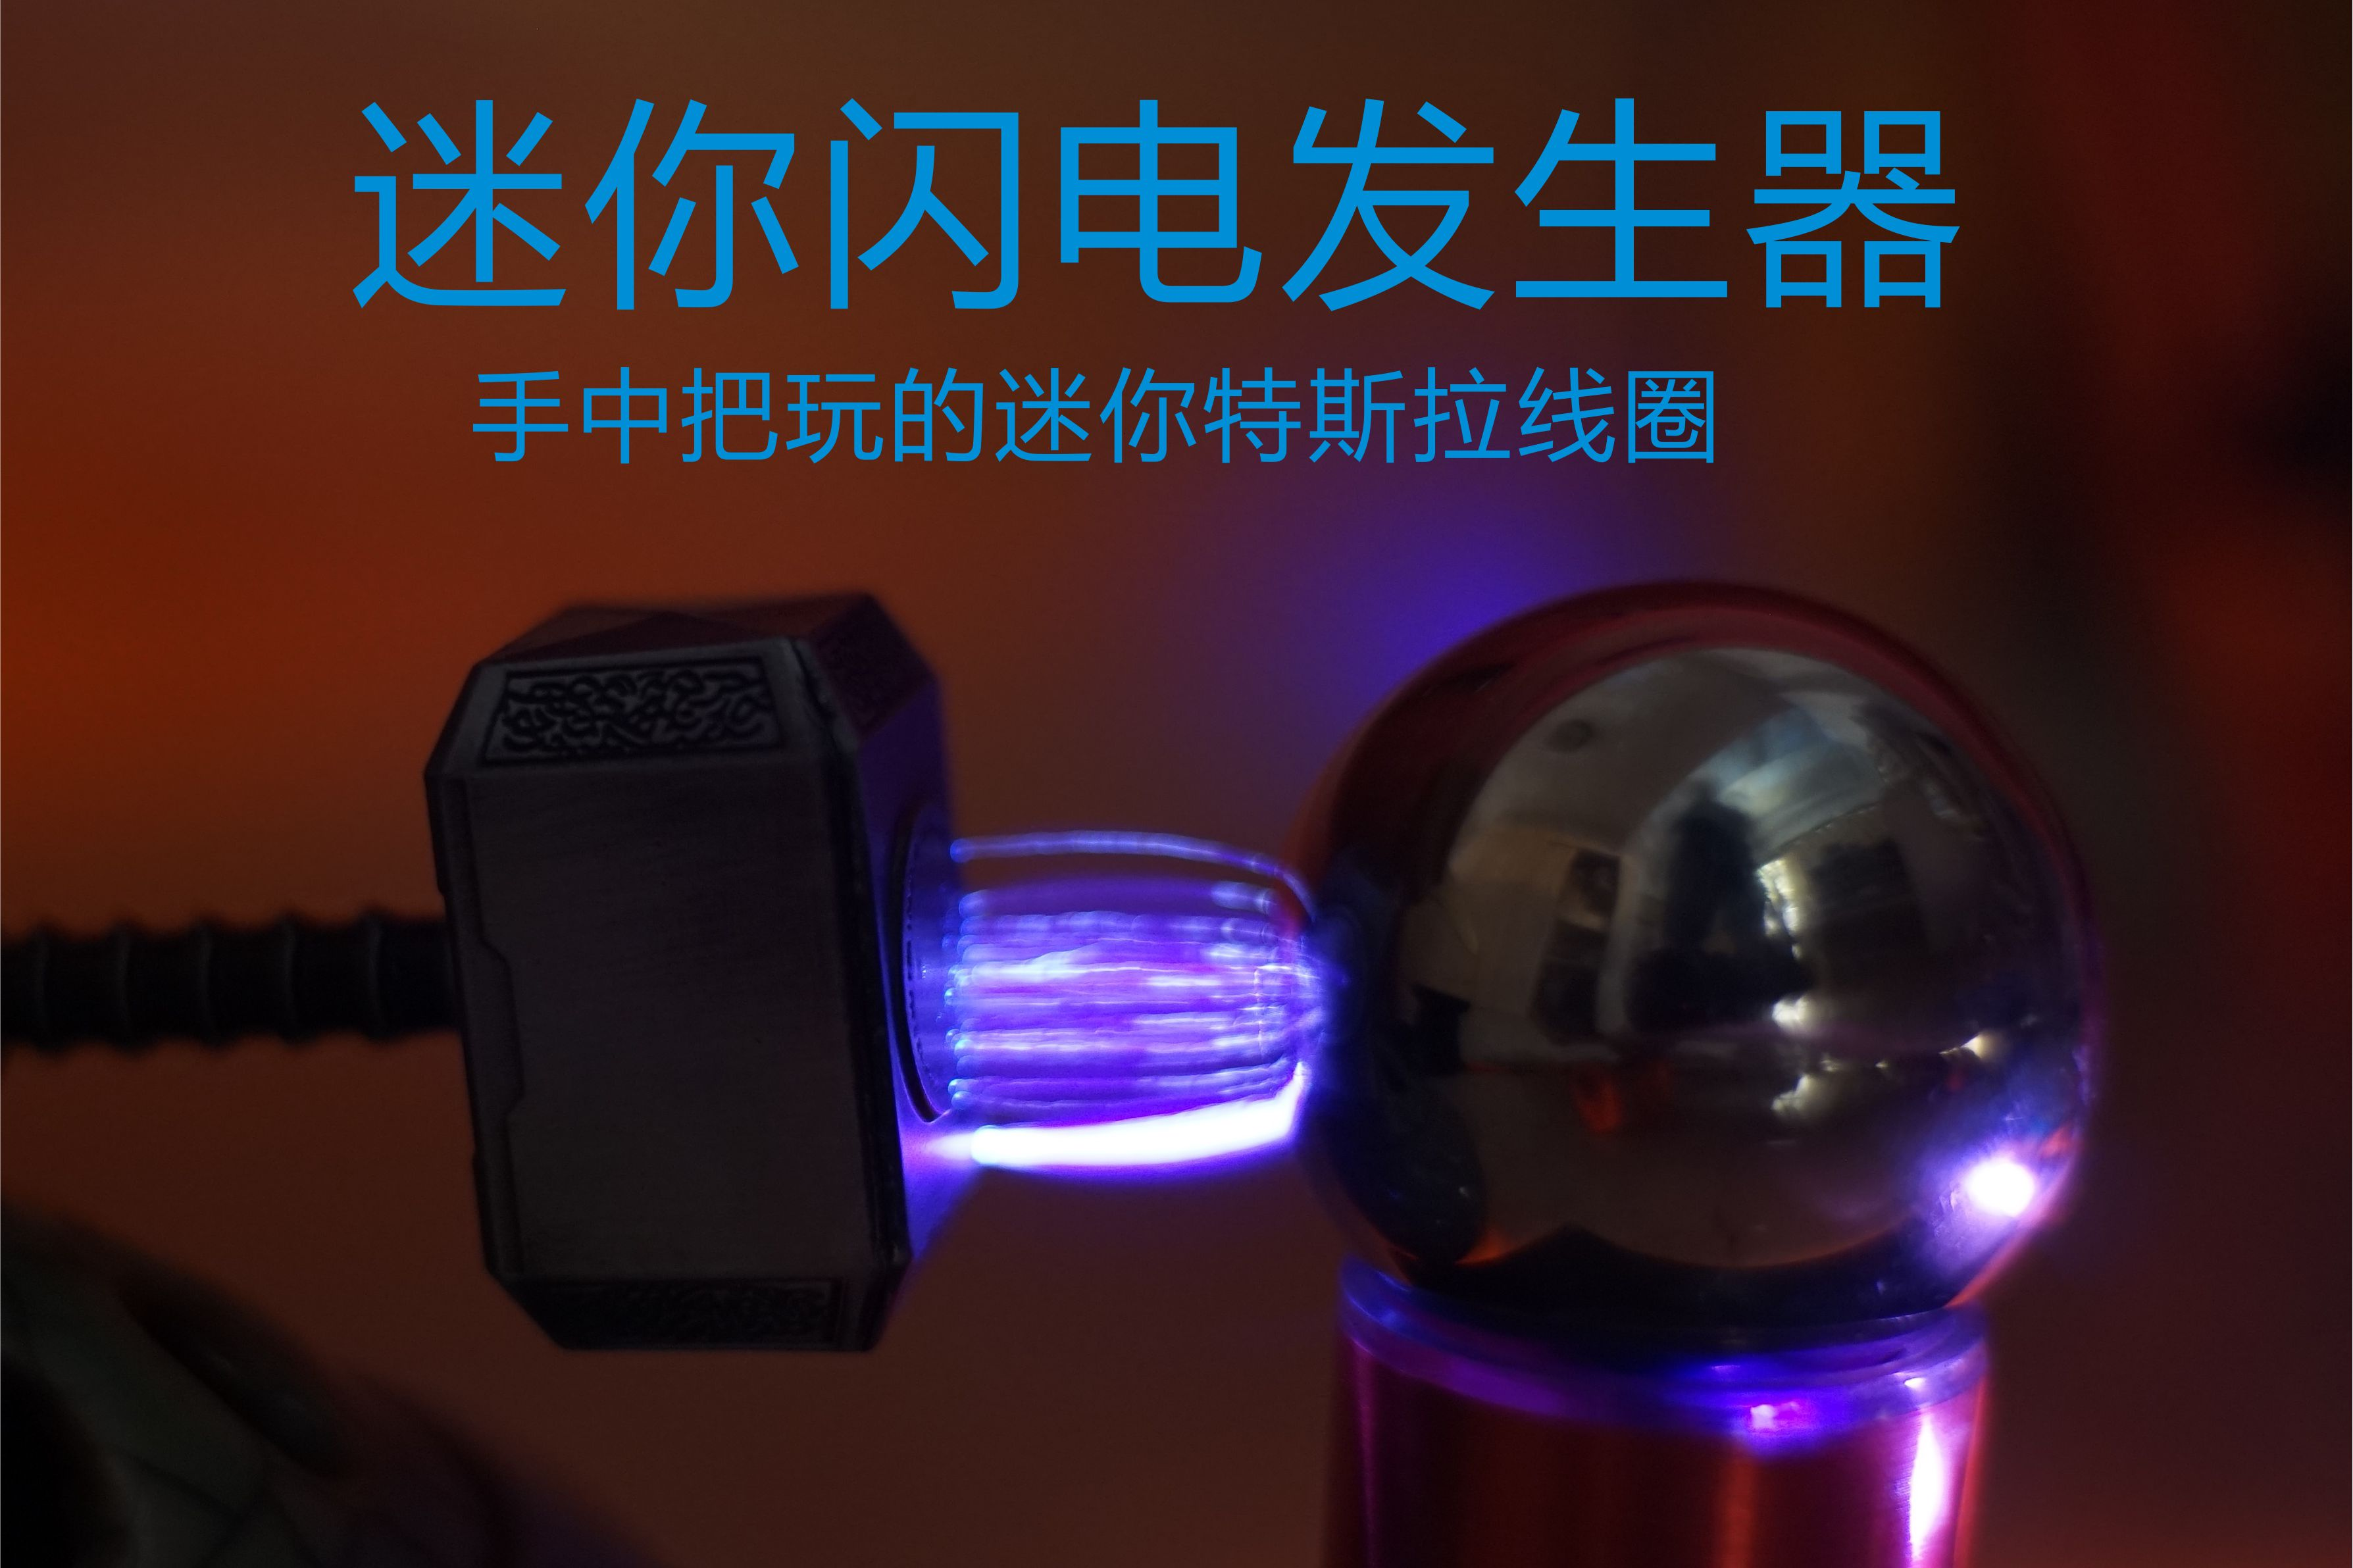 Mini Artificial Lightning Generator, Mini Tesla Coil, High Conversion Efficiency, Scientific Experiment Essential<br>